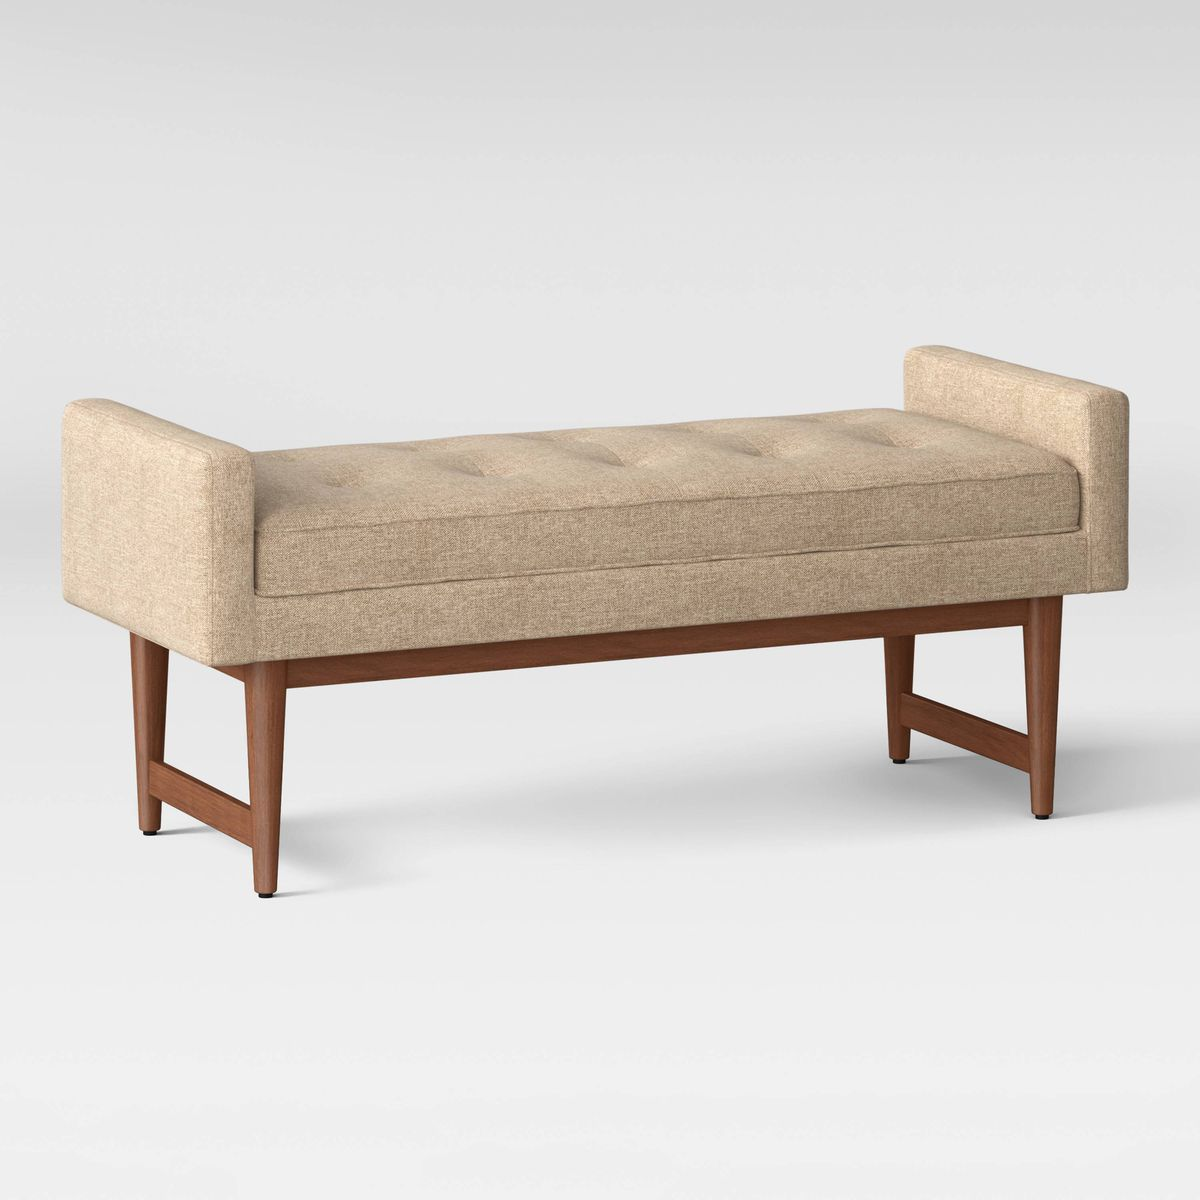 Target S Project 62 Midcentury Inspired Furniture Line